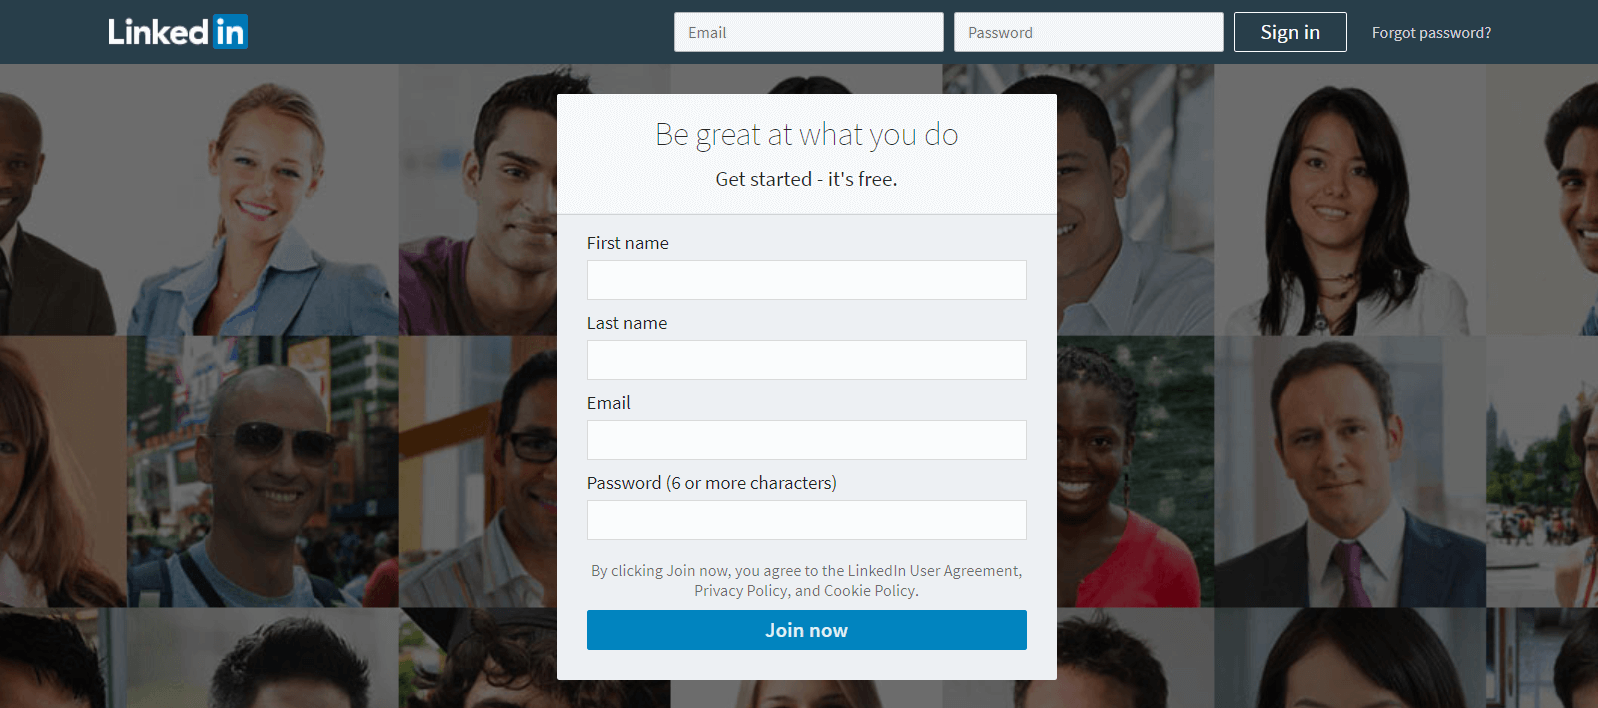 The LinkedIn homepage.